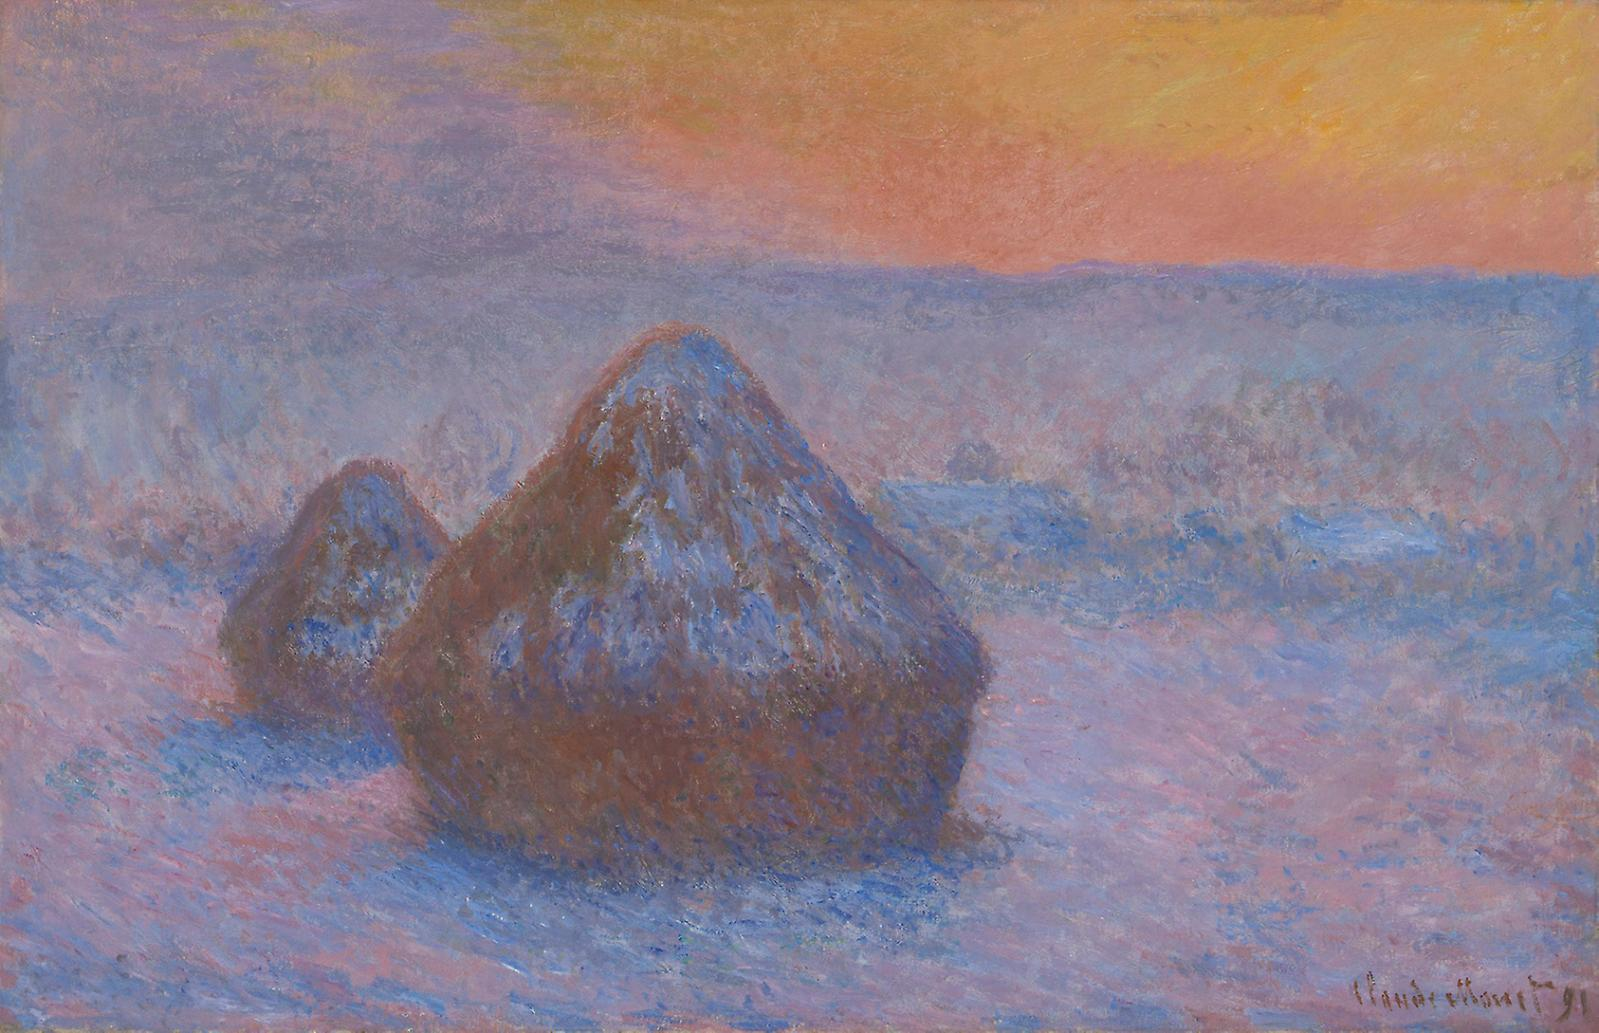 Claude Monet, Stacks of Wheat (Sunset, Snow Effect), 1890-91, oil on canvas.Courtesy of The Art Institute of Chicago, Potter Palmer Collec